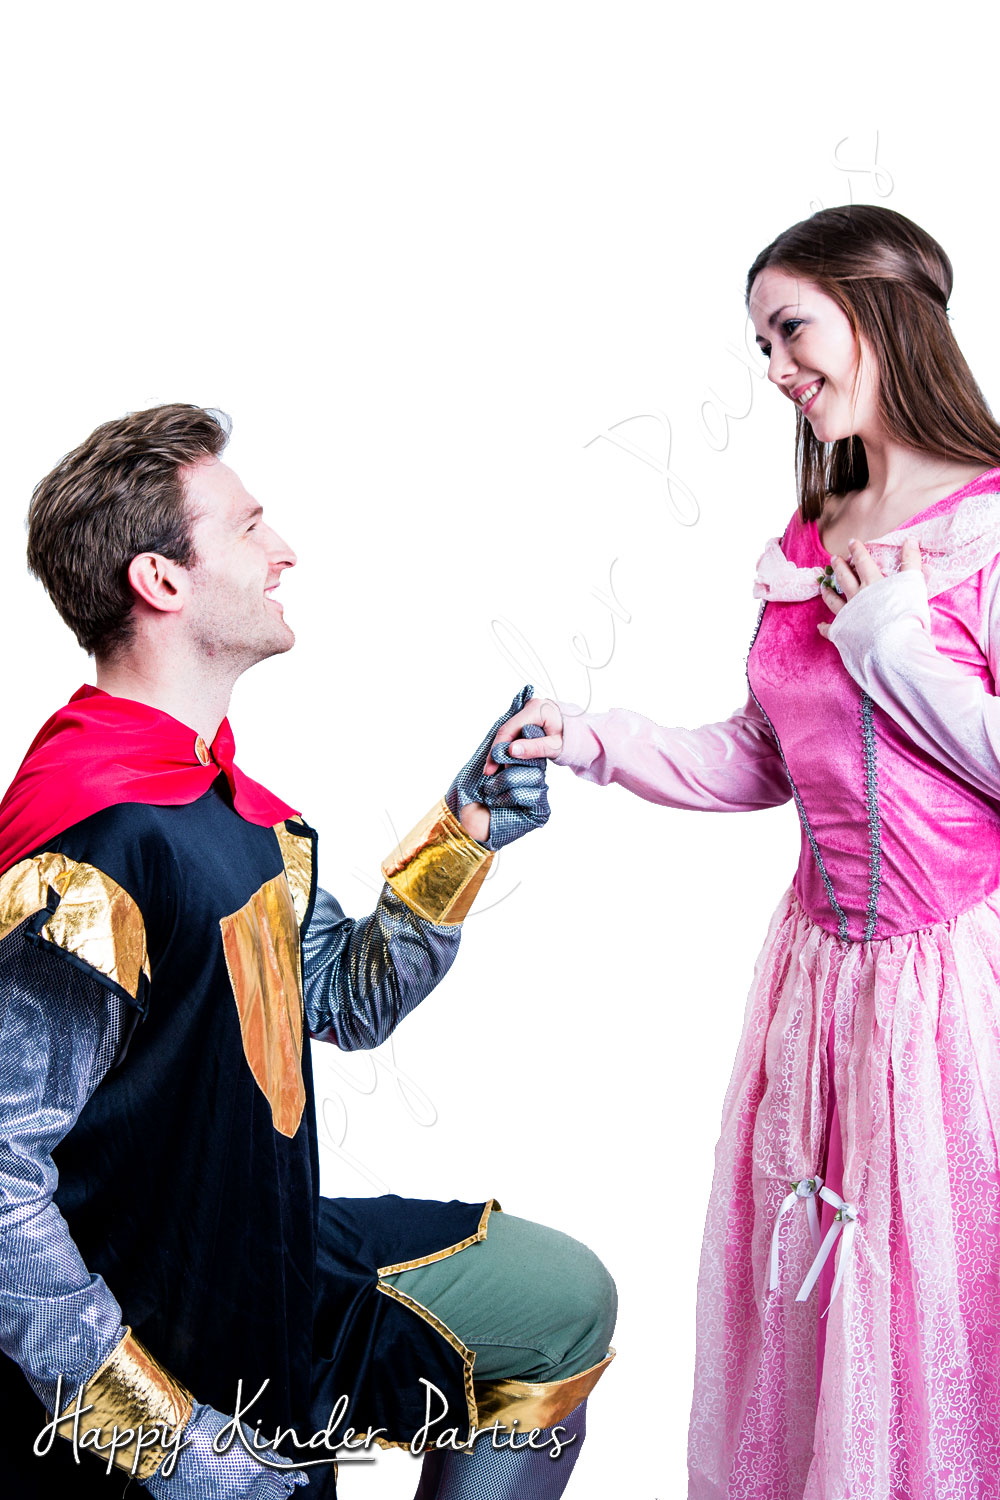 Princess & Knight Childrens Party Entertainer Costume